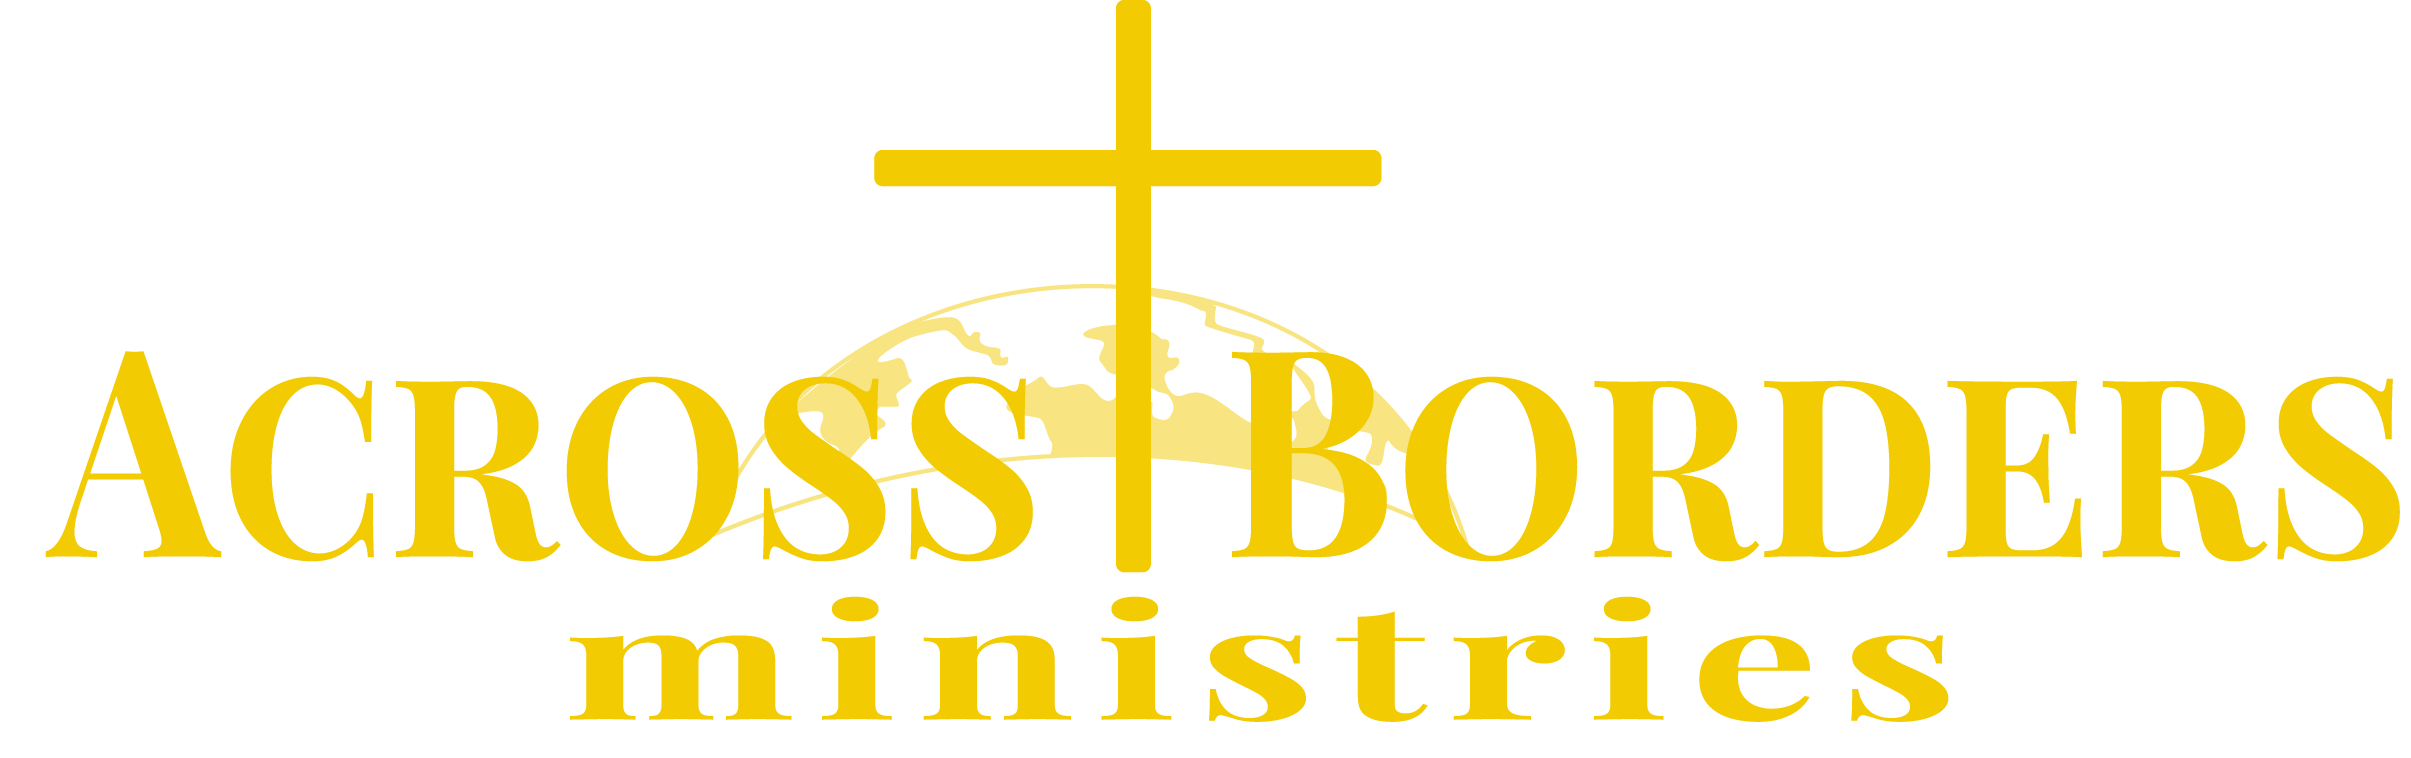 Across Borders Ministries